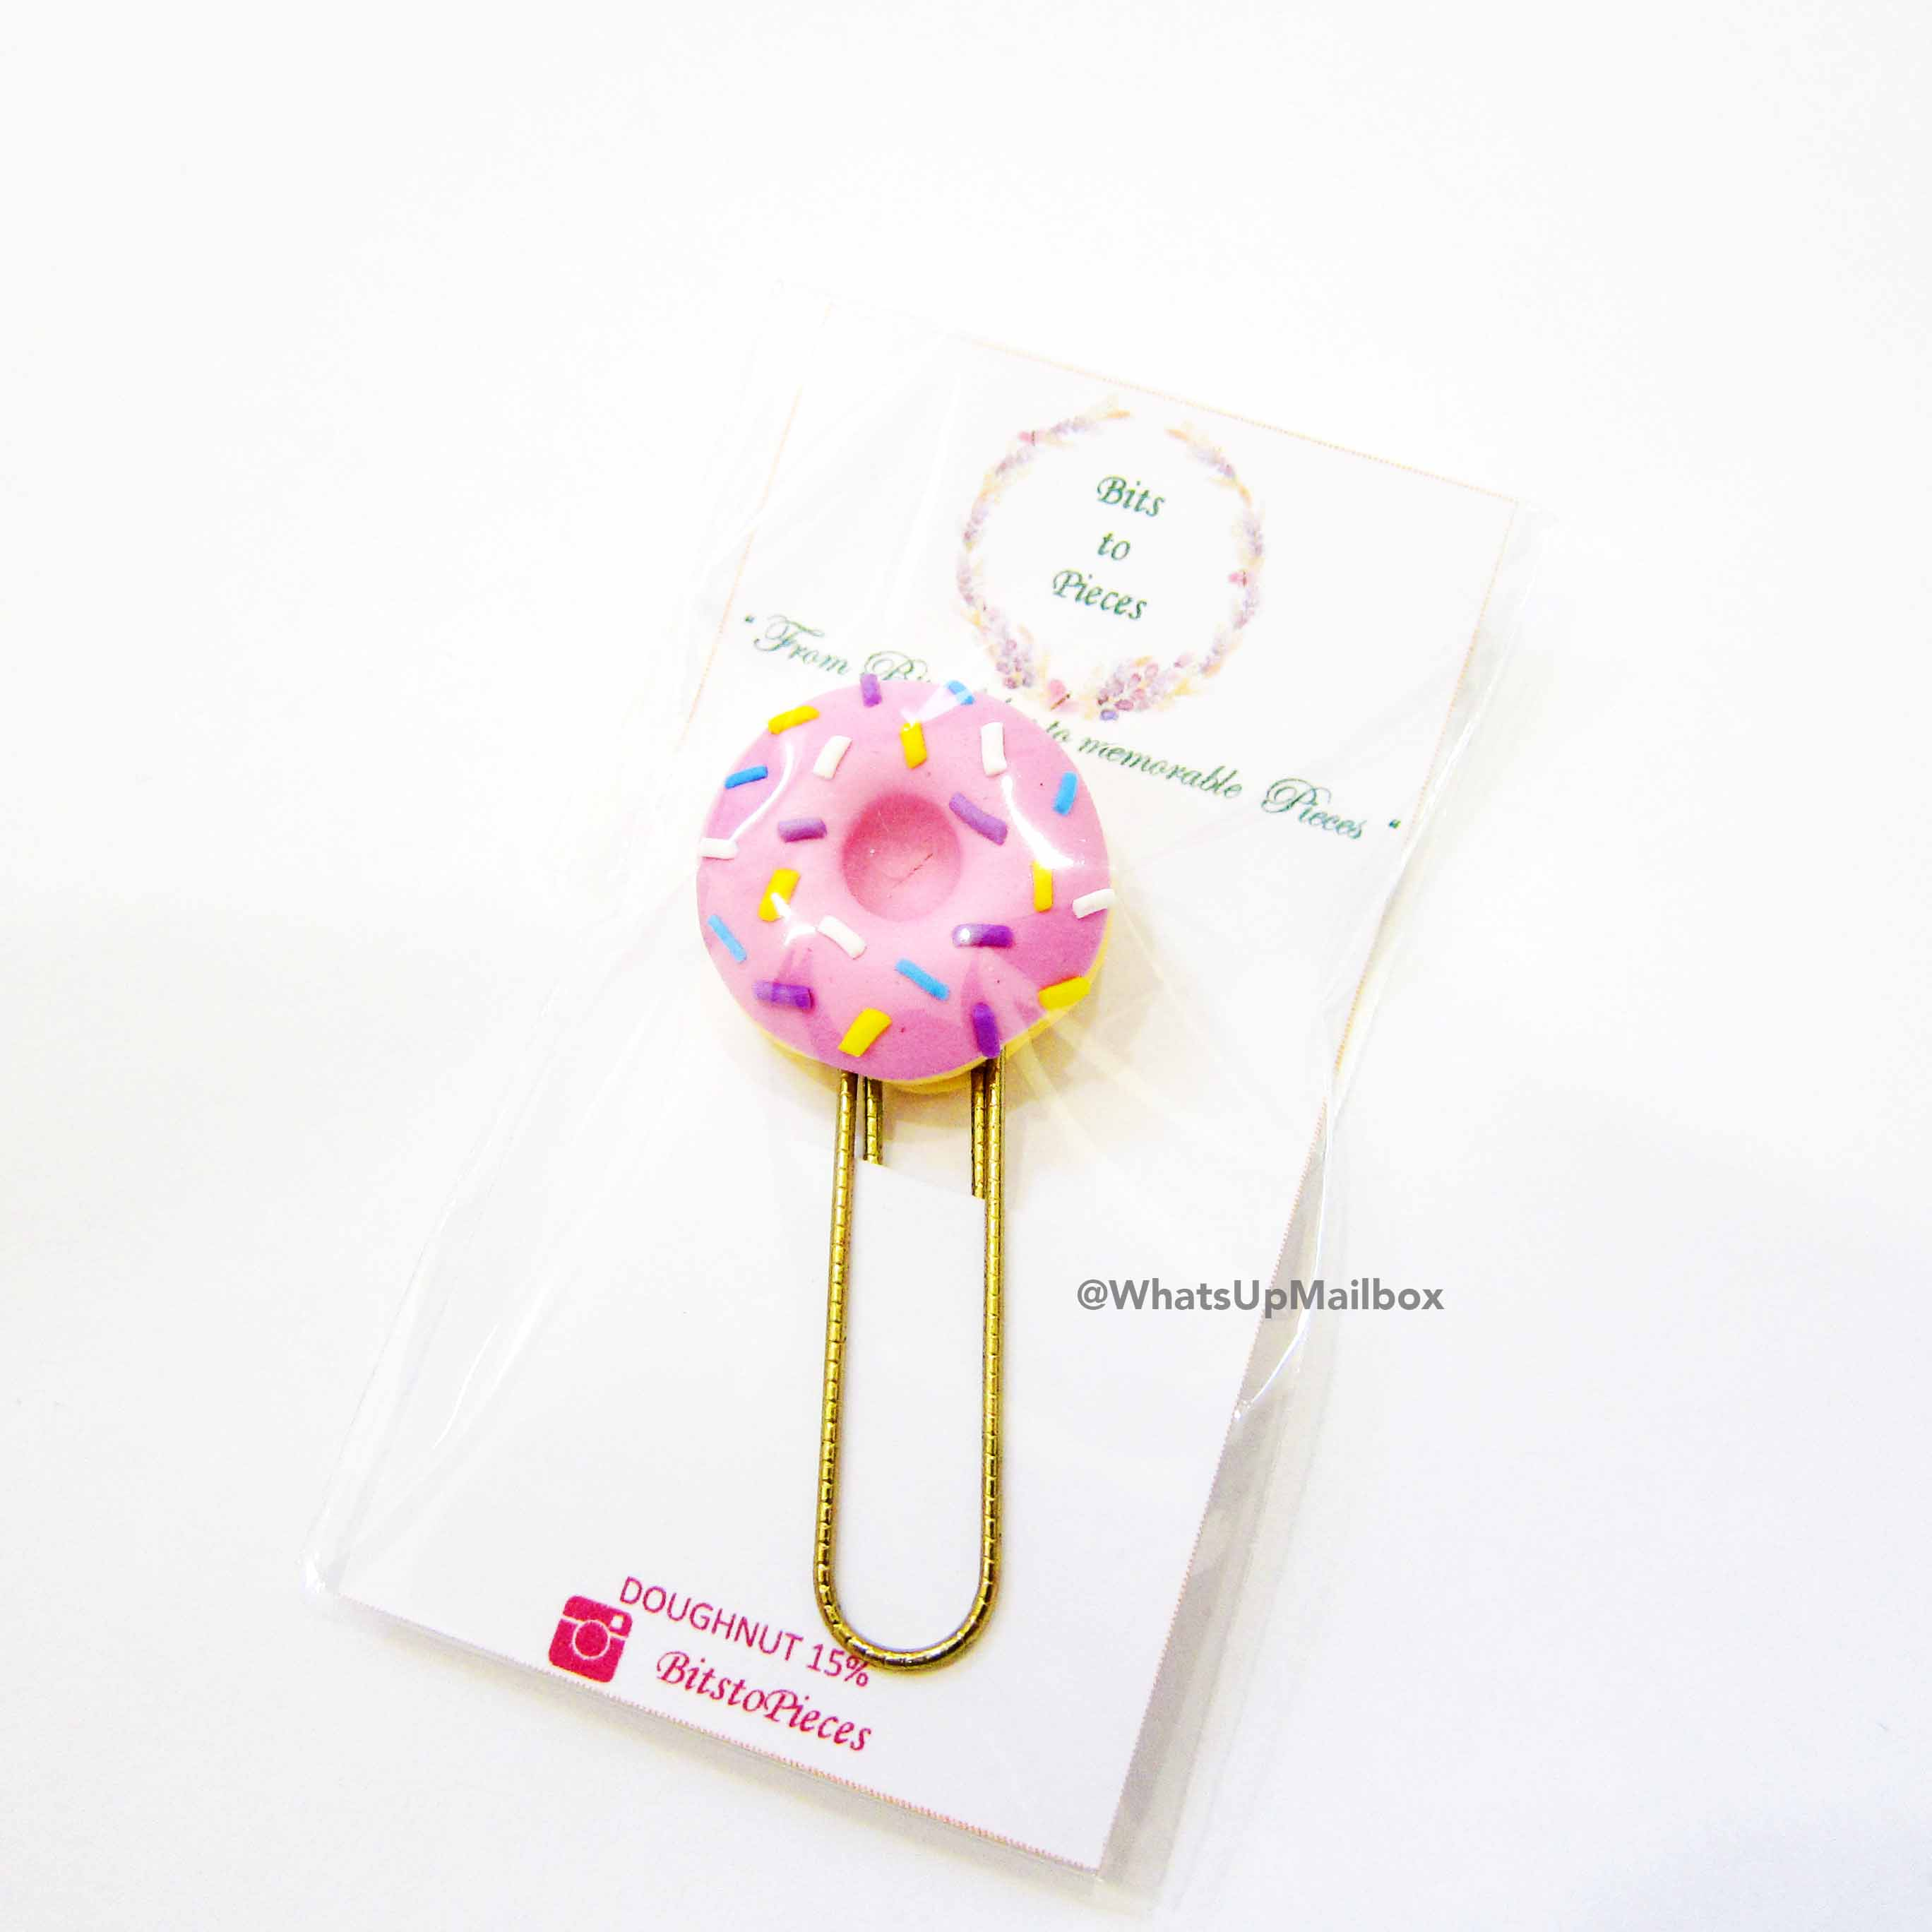 Panduh Box July 2016 - Bits to Pieces Donut Paper Planner Clip